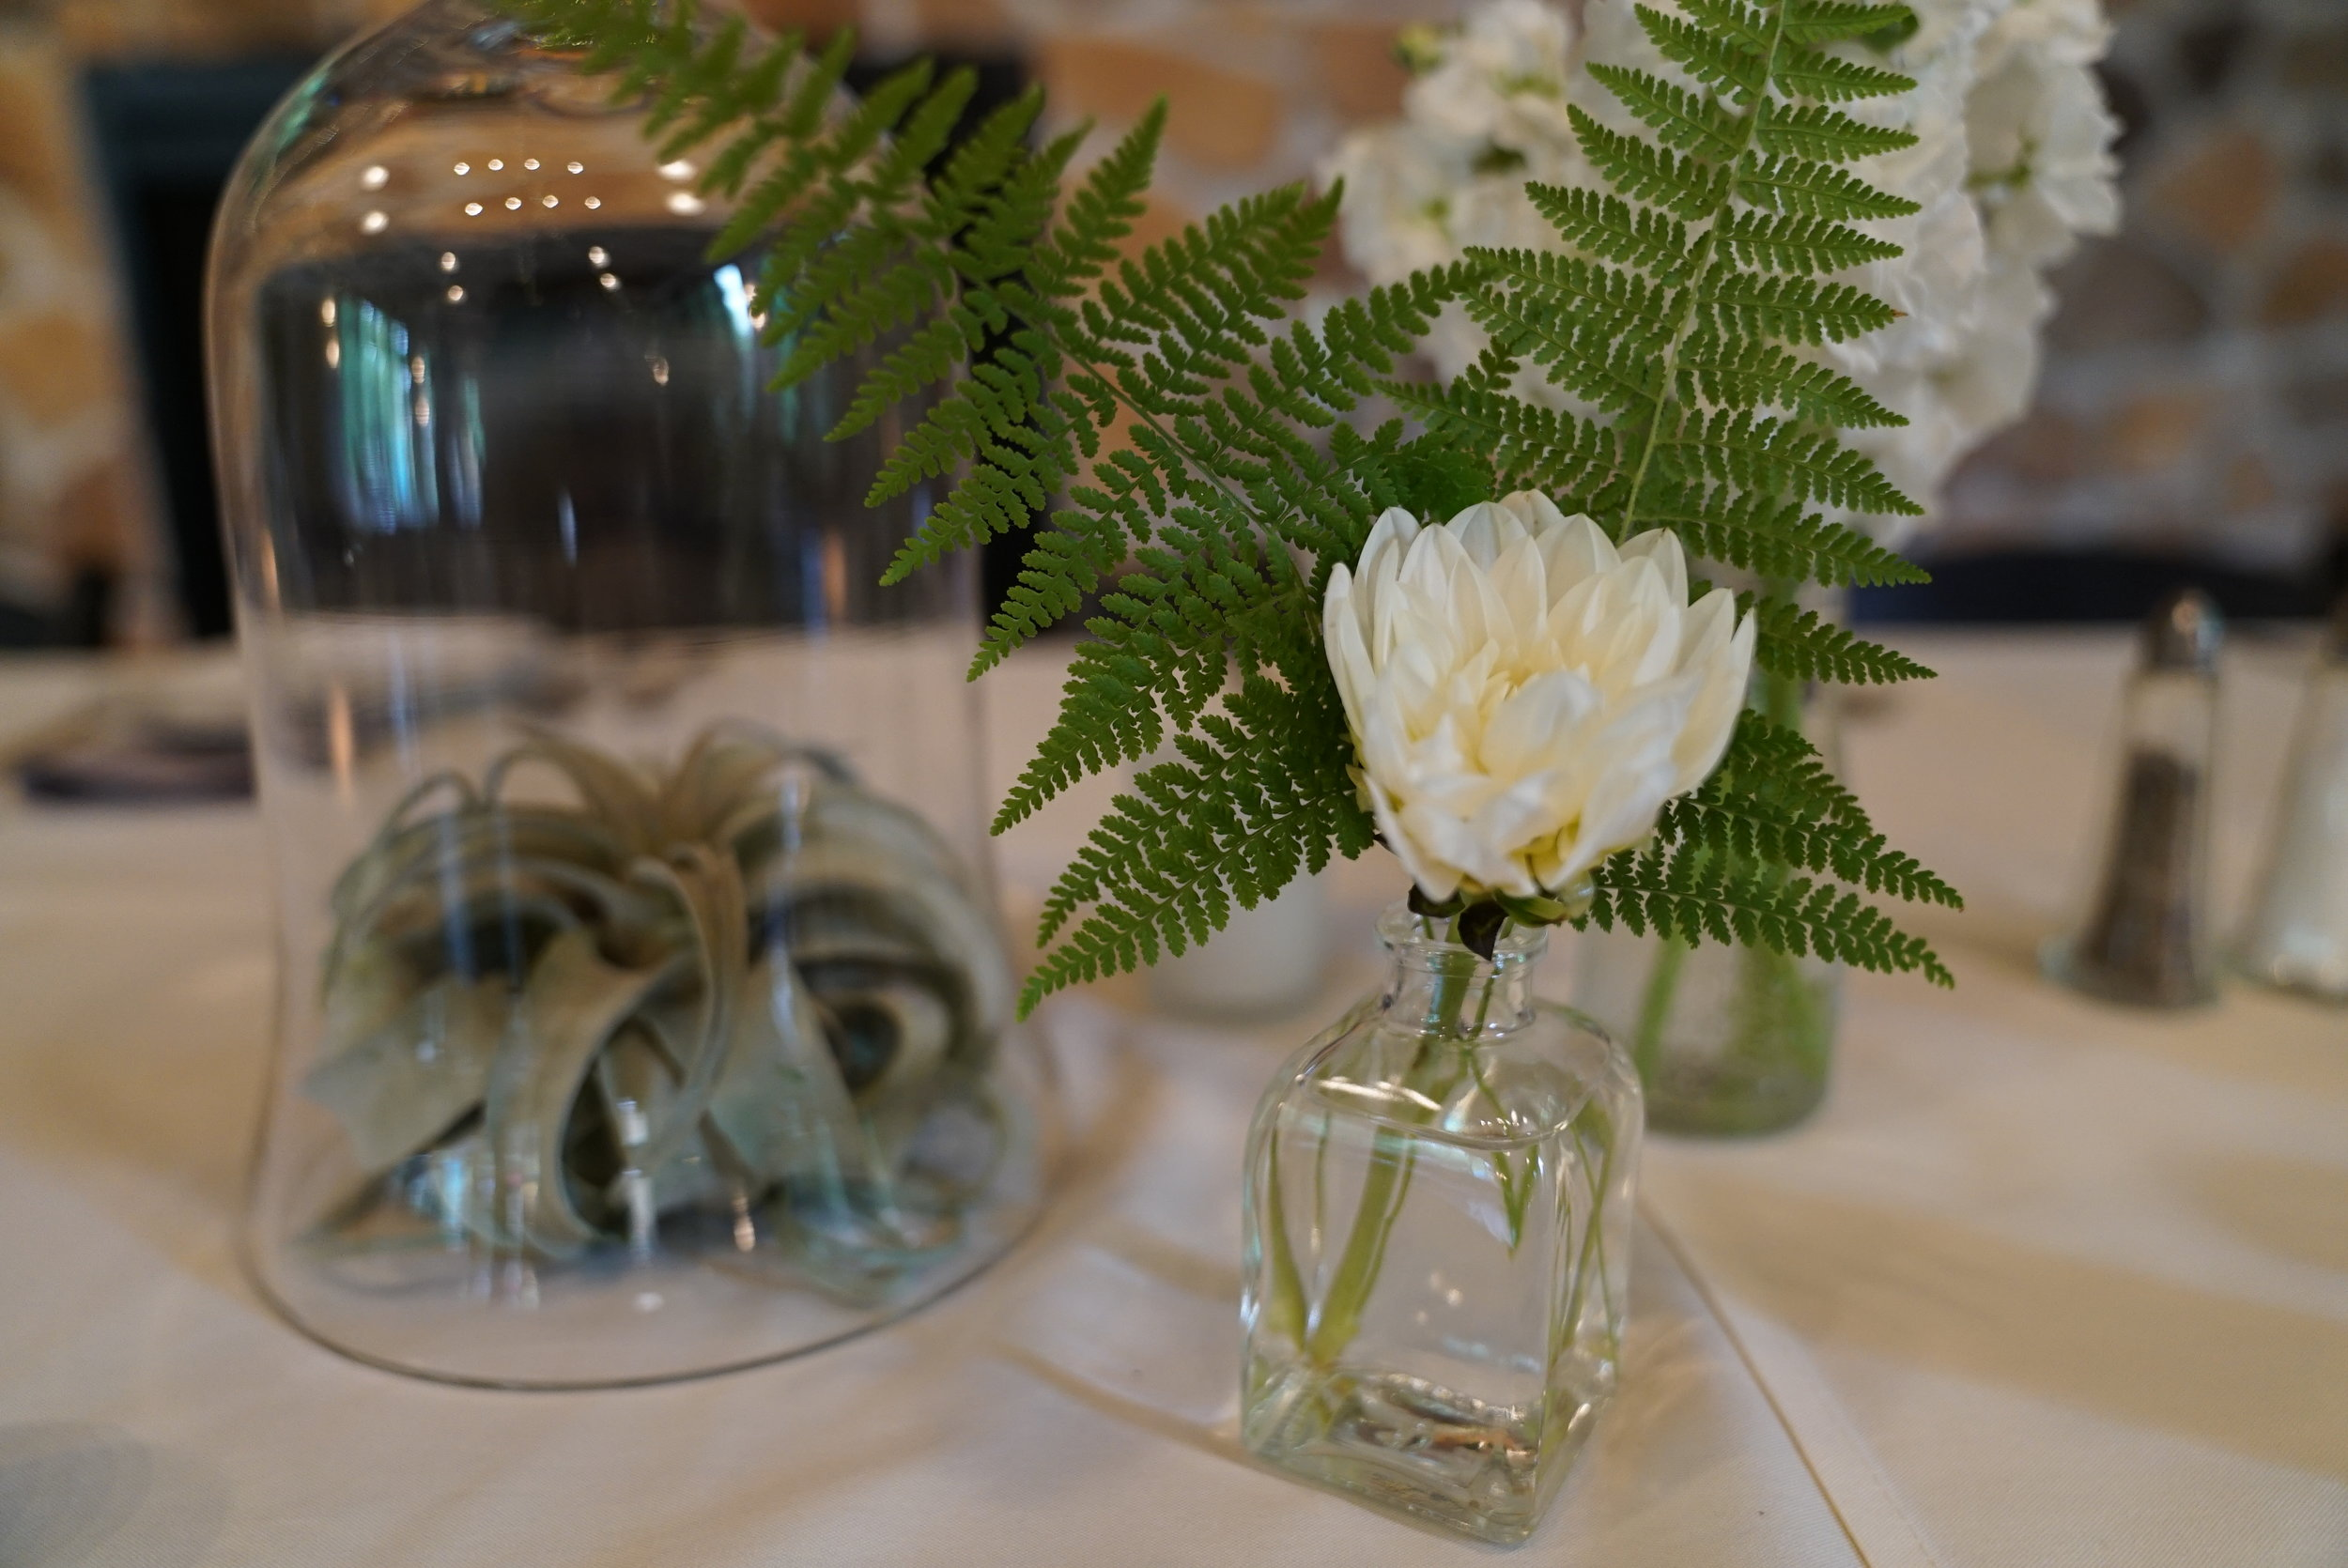 Dahlias, ferns and tillandsias on the head table. We set out vases for all the bridal bouquets so that they could get a drink of fresh water while everyone was dancing the night away.